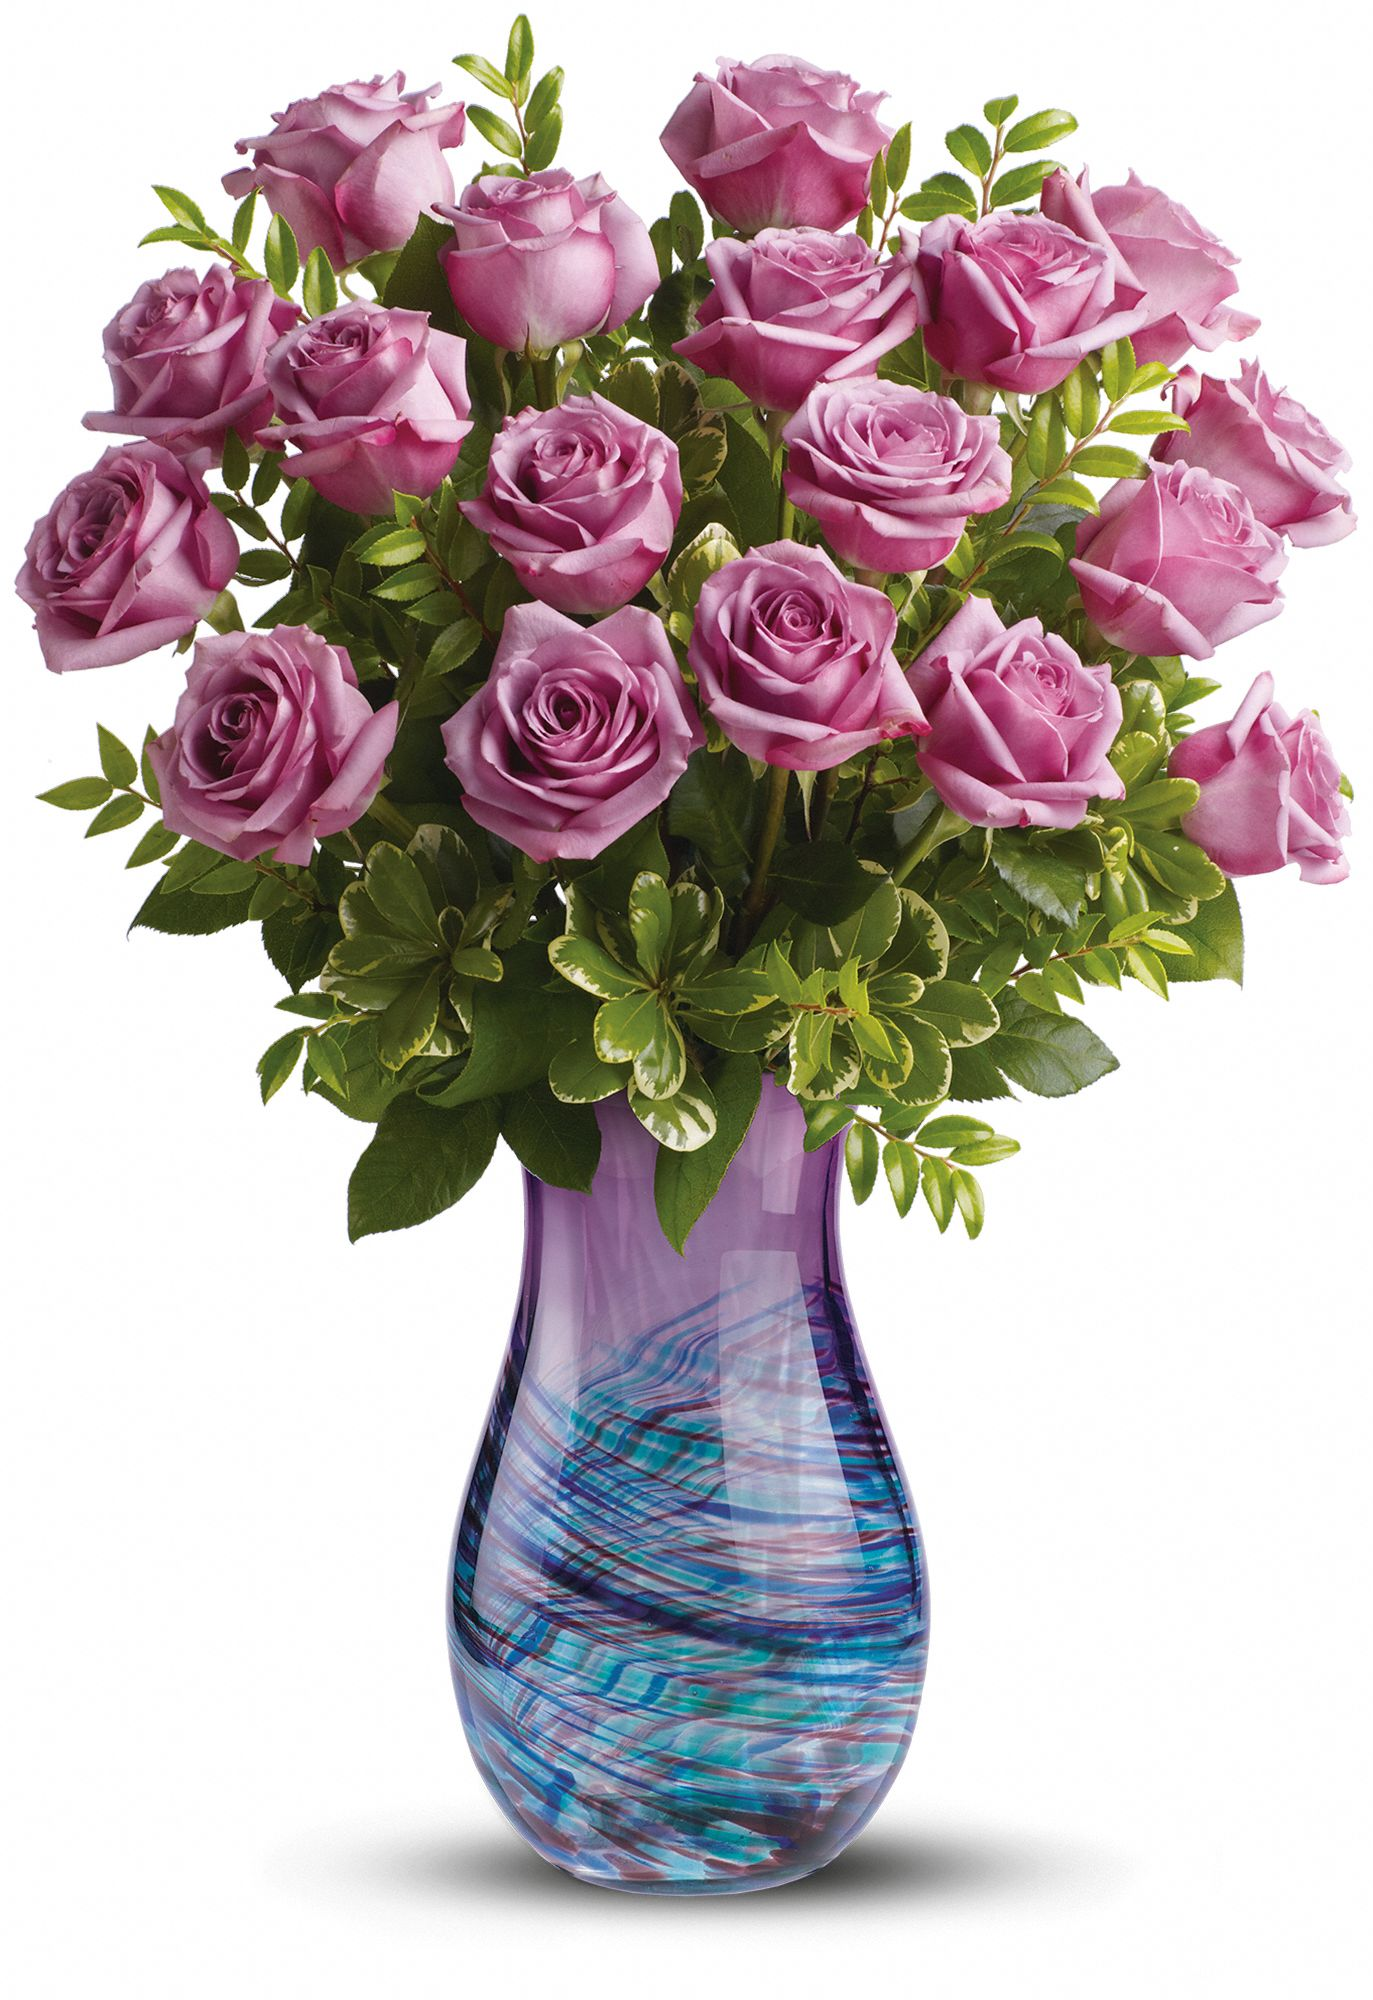 Teleflora's Deeply Loved Rose bouquet for Mother's Day